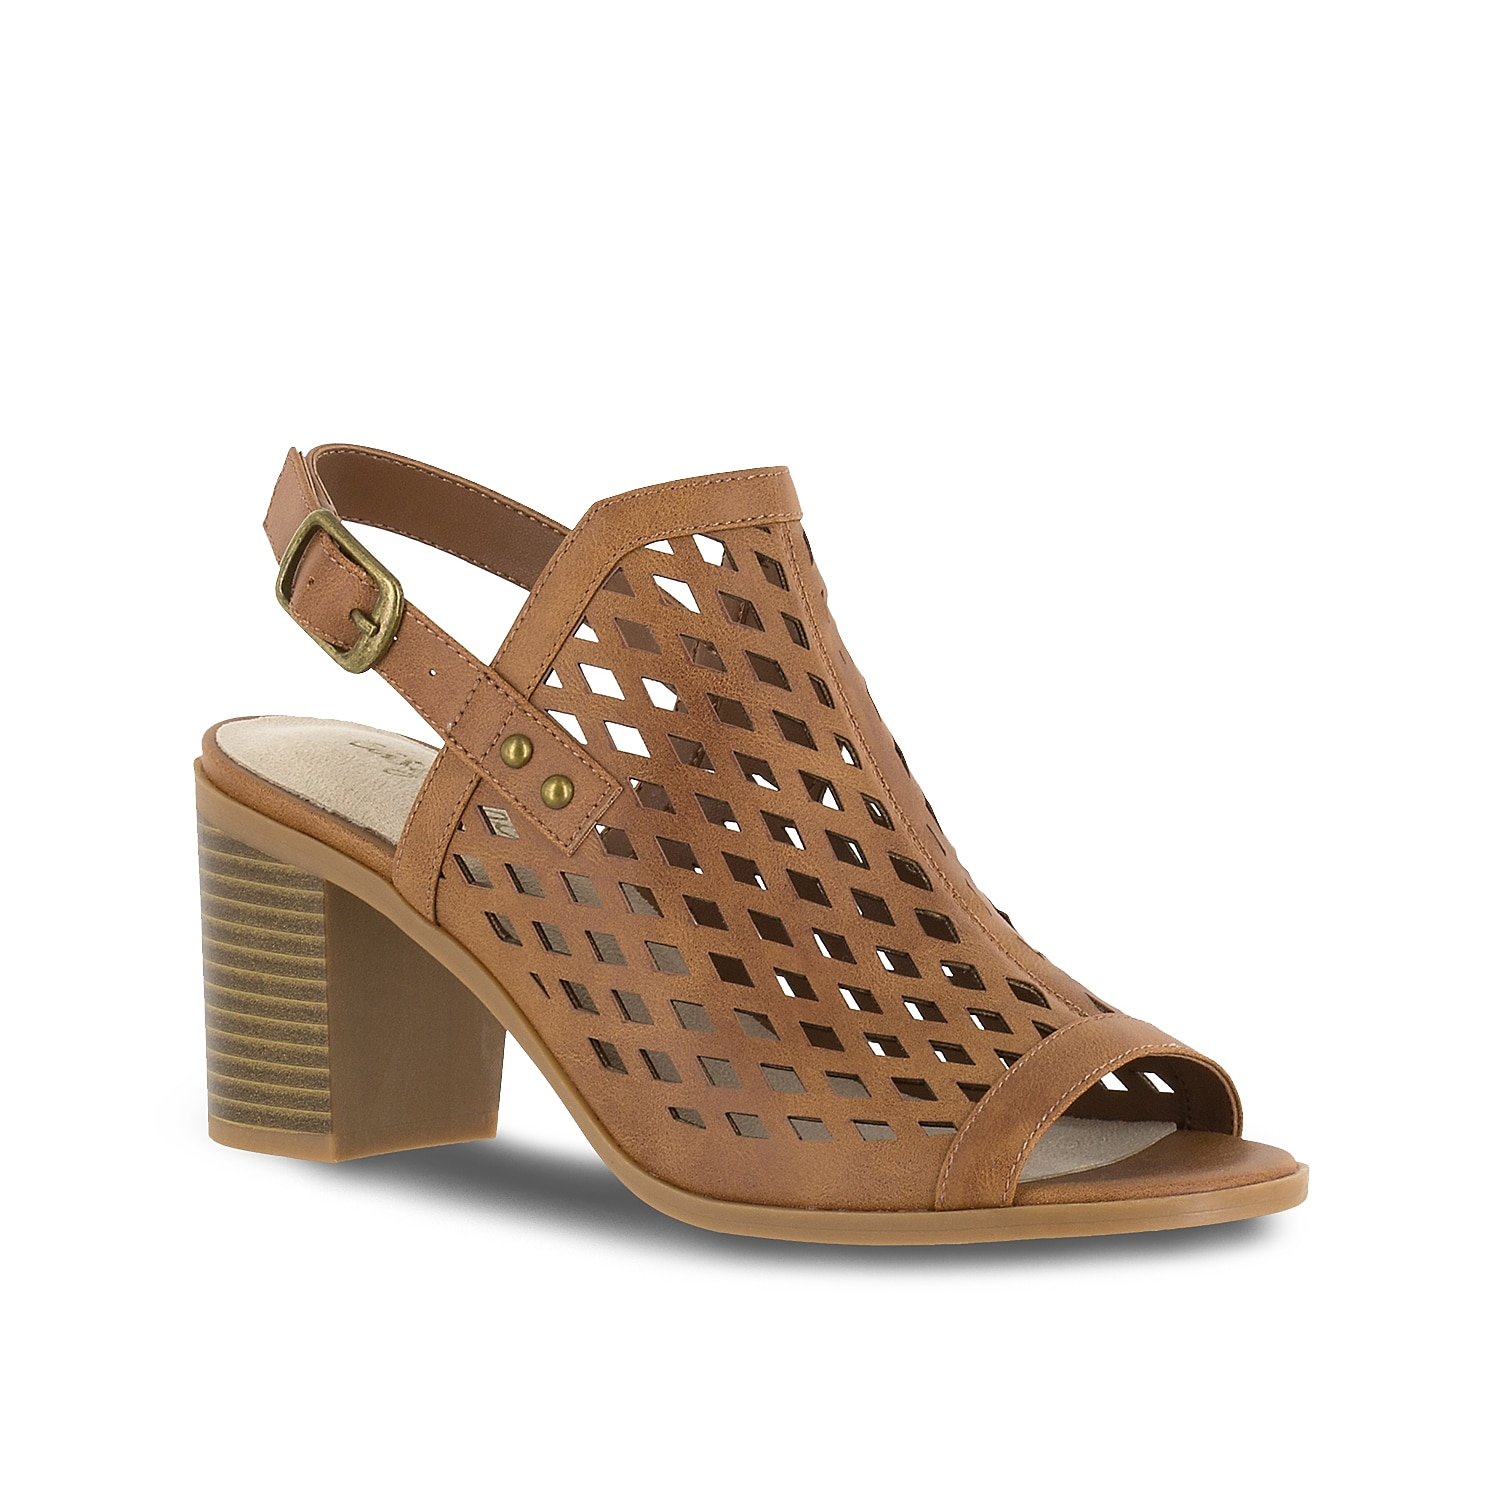 A slingback with diamond cut out detailing, the Erin by Easy Street is a transitional sandal to carry you between seasons. This shootie features a contemporary block heel for style and stability.